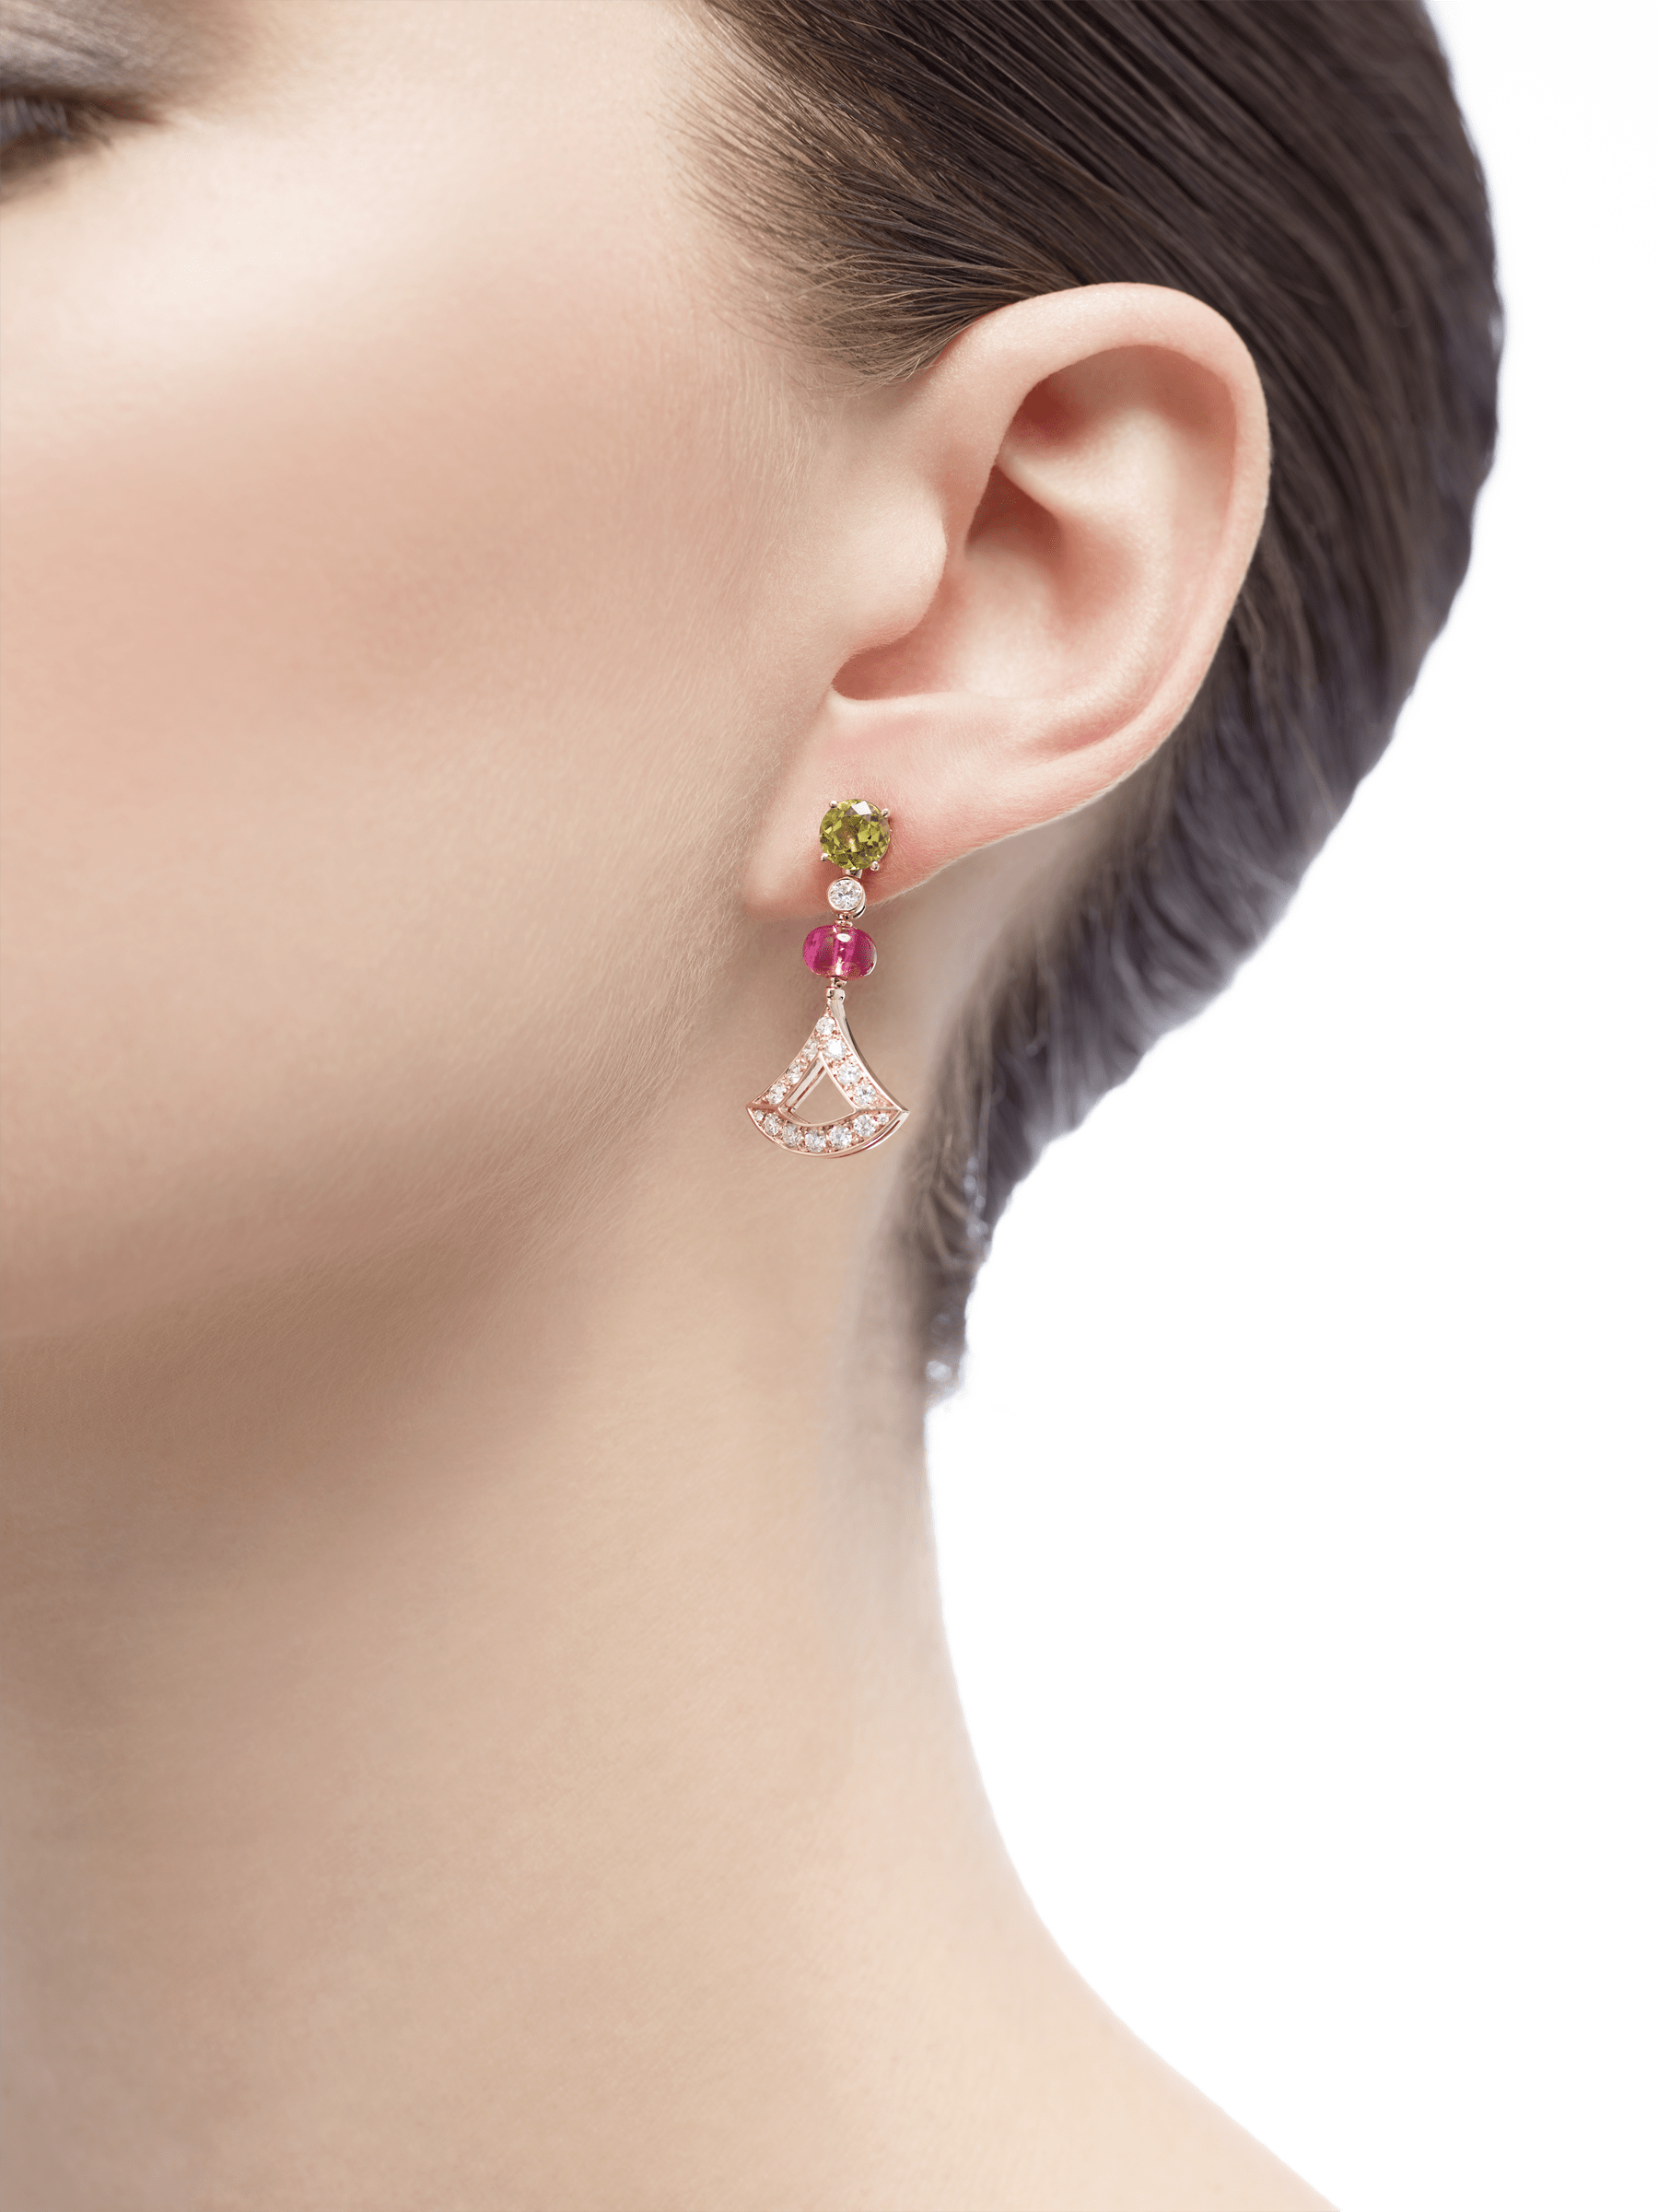 DIVAS' DREAM 18 kt rose gold earrings set with coloured gemstones and pavé diamonds 355616 image 3